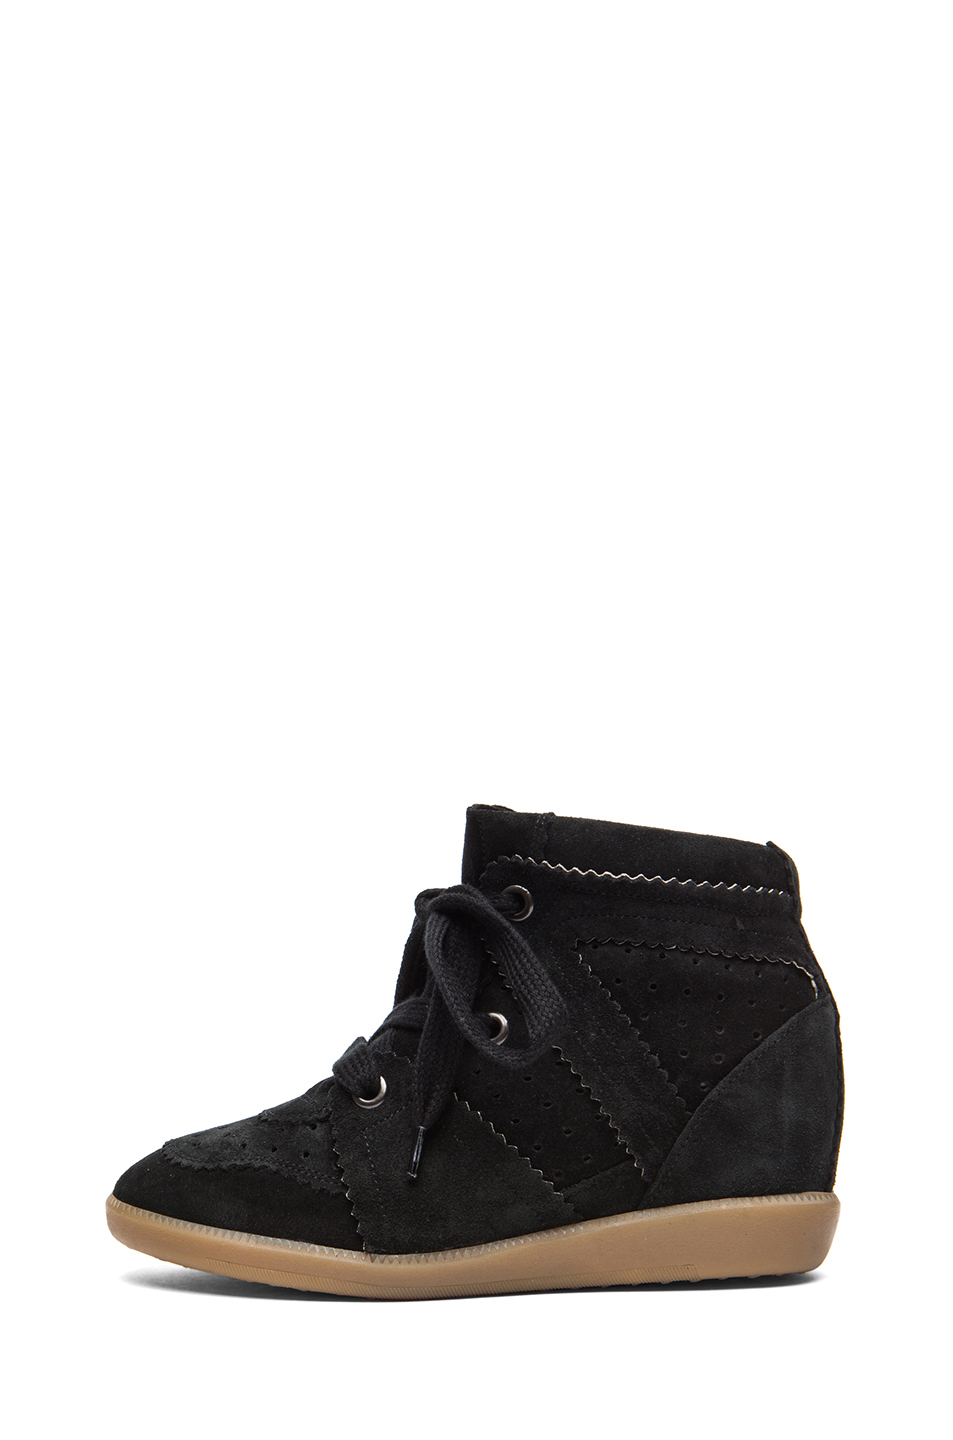 Isabel Marant|Bobby Calfskin Velvet Leather Sneakers in Faded Black